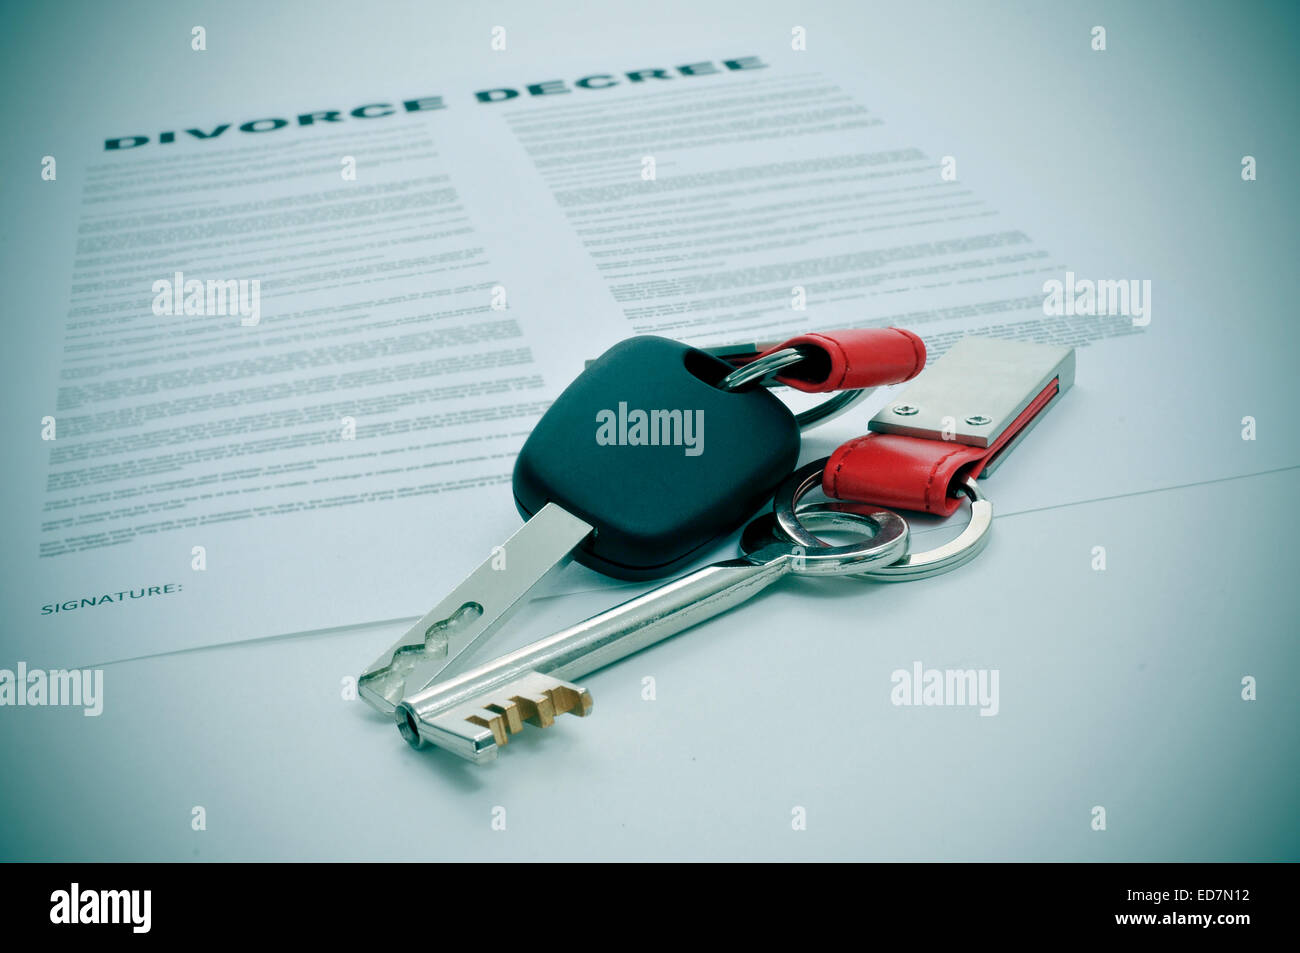 a divorce decree document and the keys of a car and a house - Stock Image